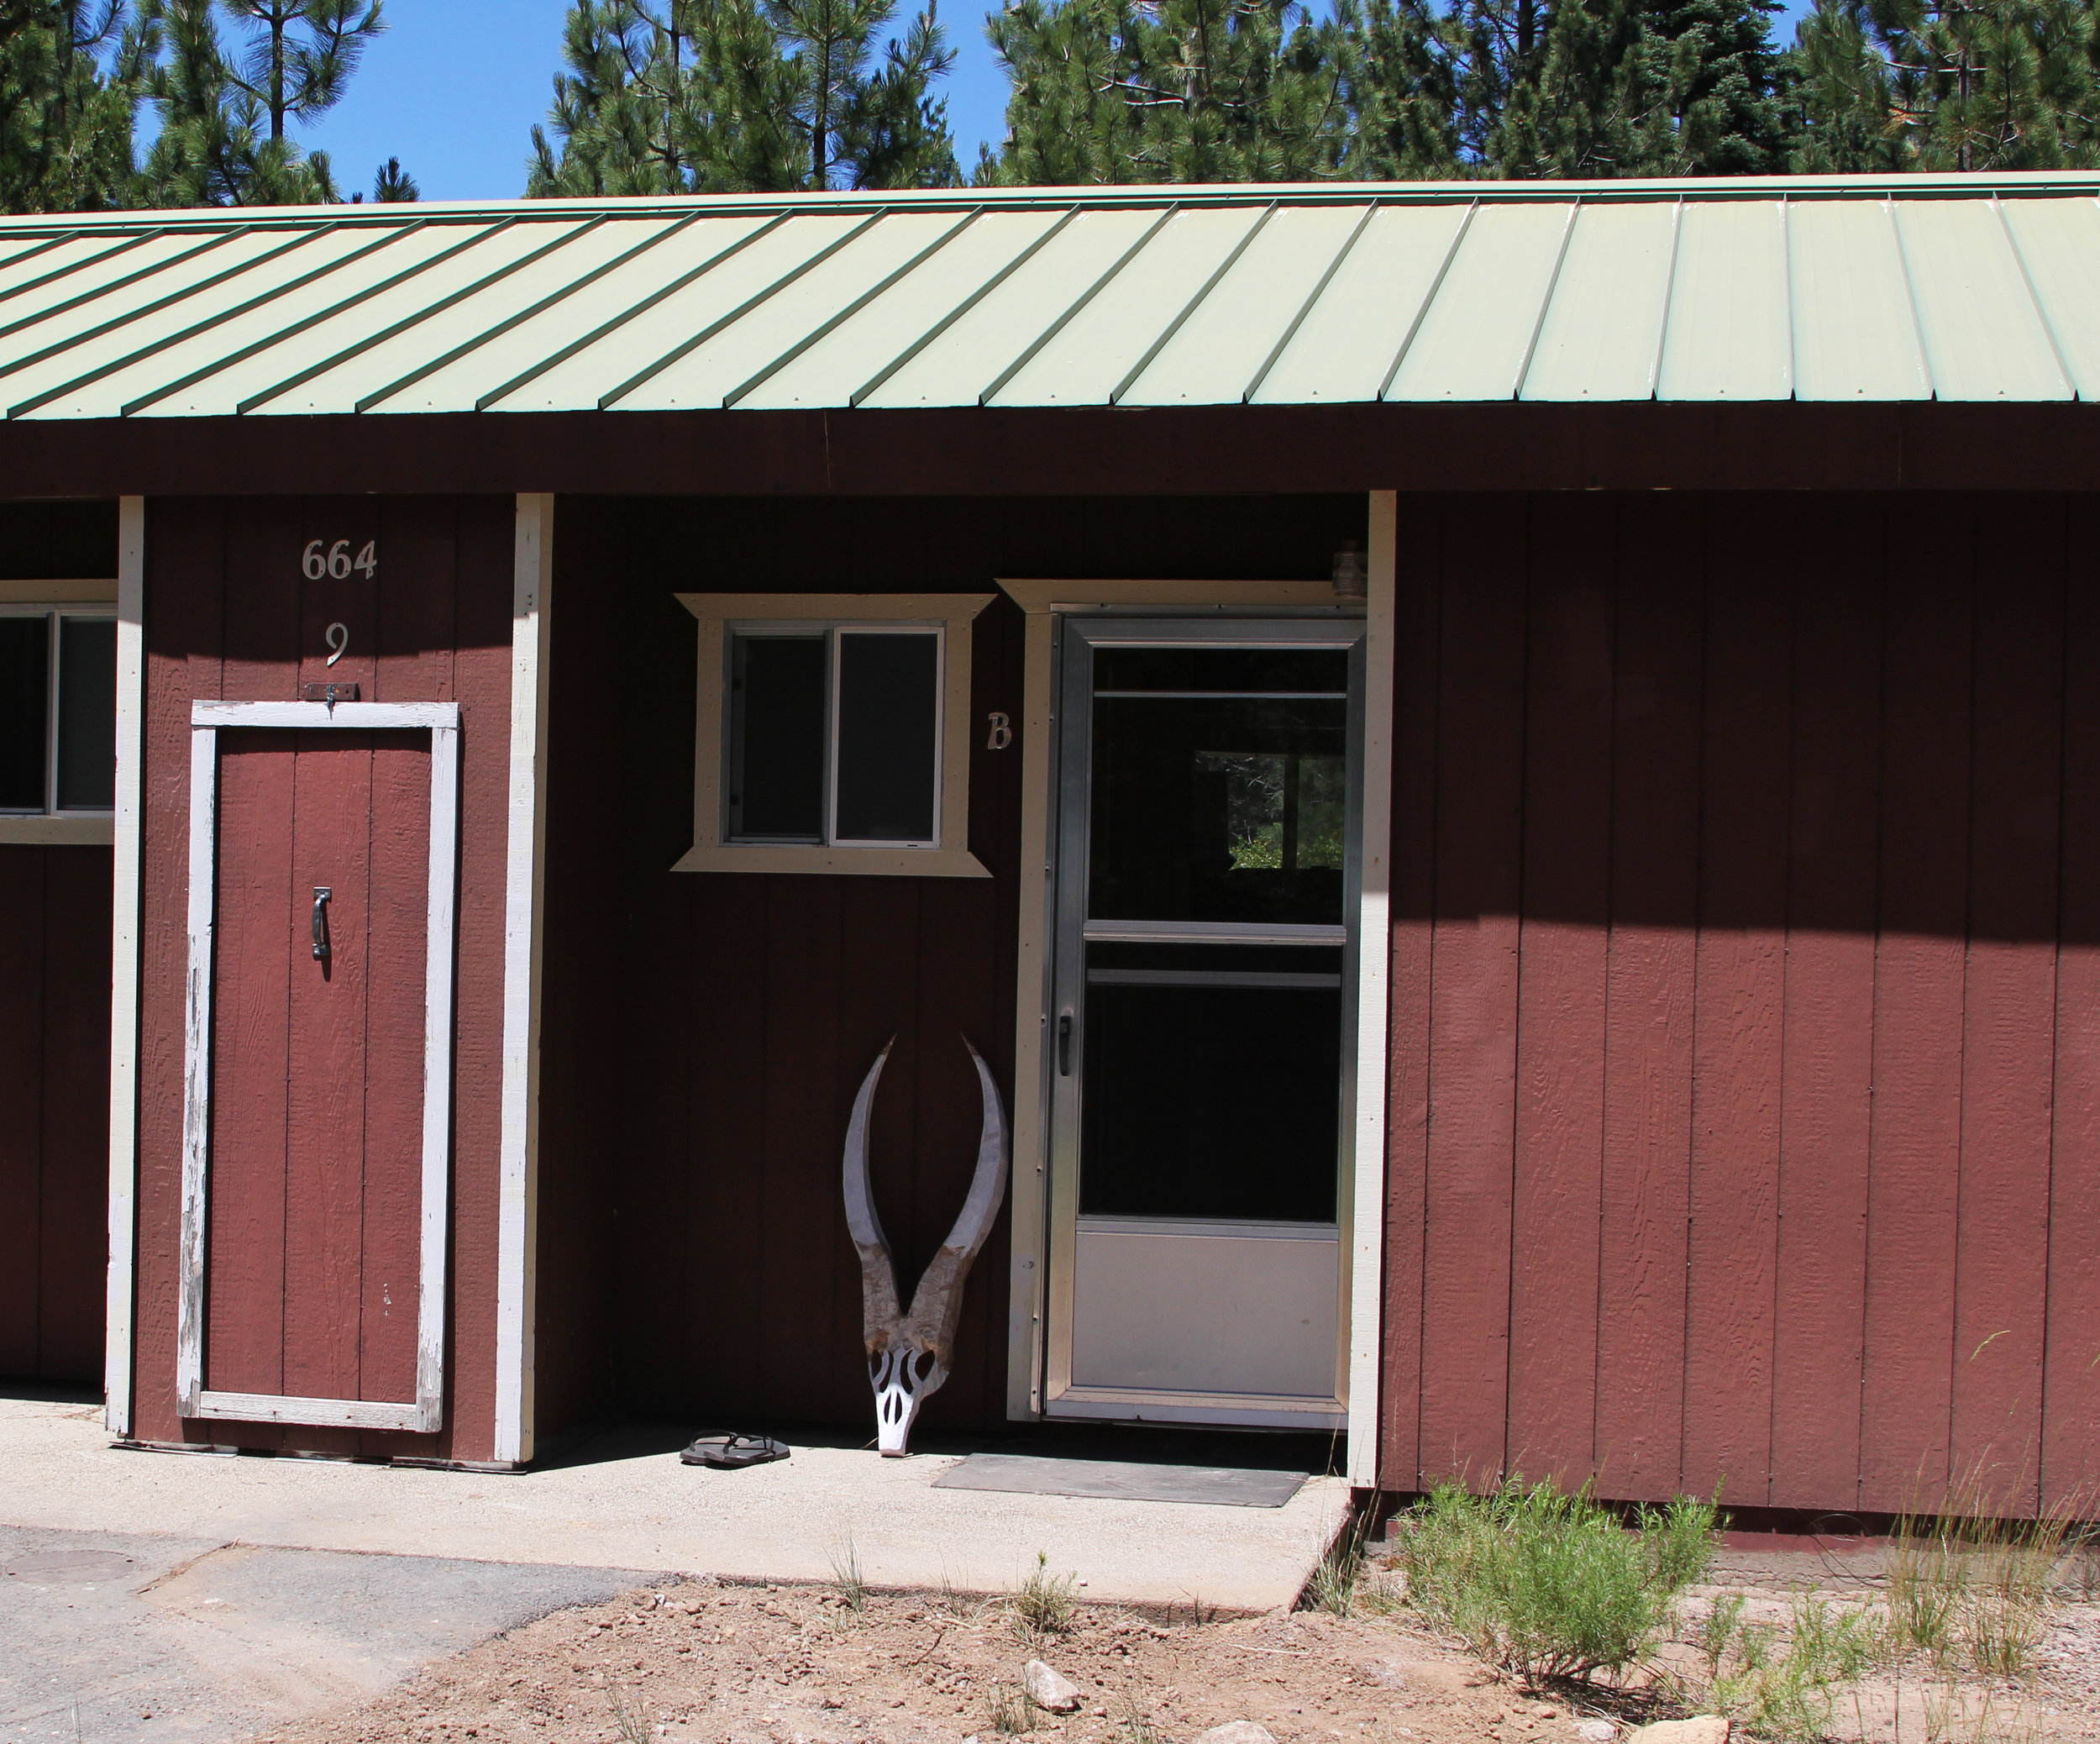 Artist-In-Residency lodging in the Park Ranger quarters.